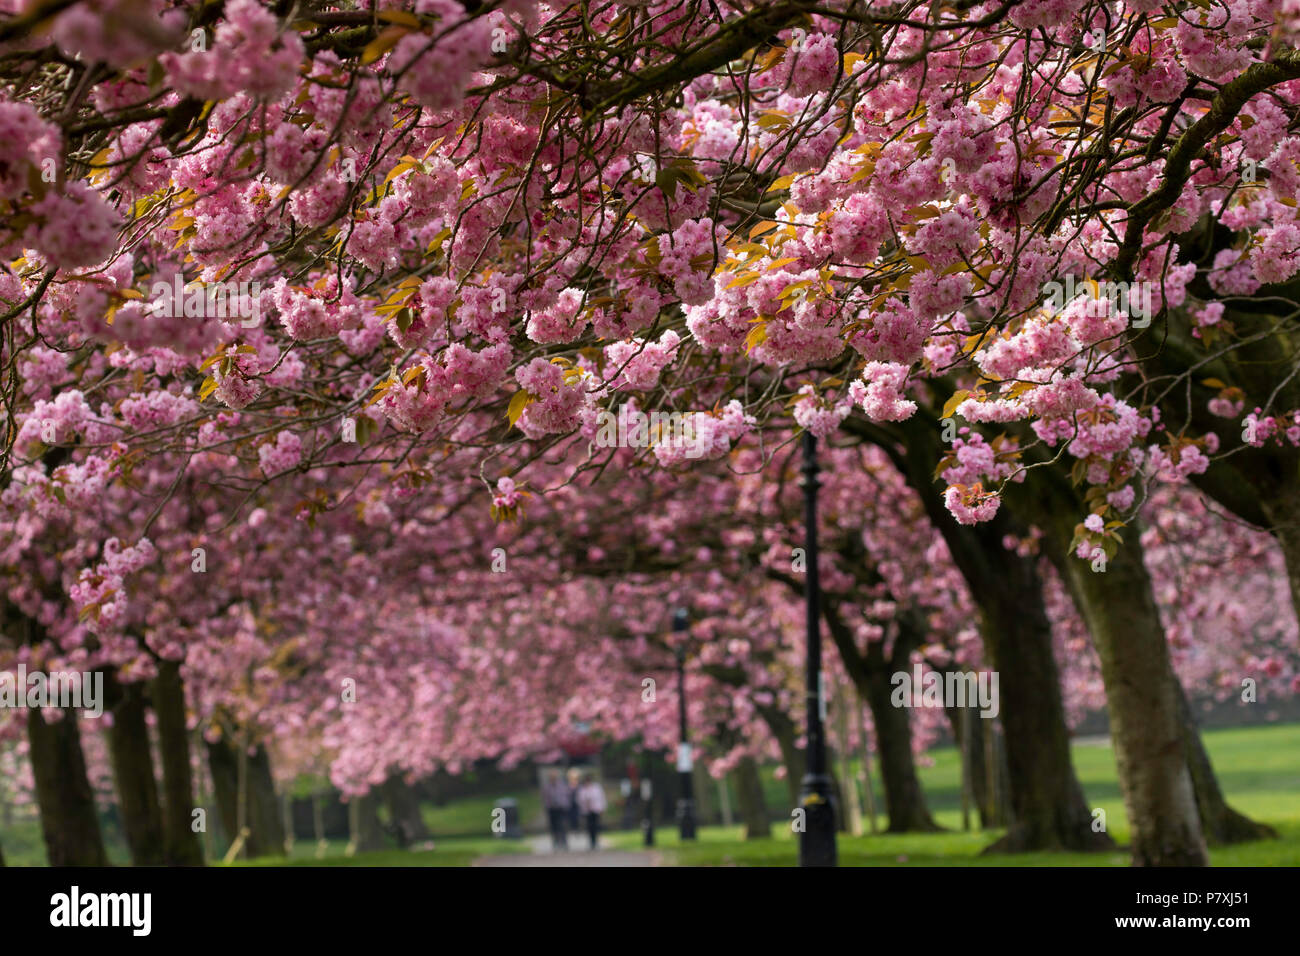 A canopy of Pink Cherry blossom over a path in Harrogate,North Yorkshire,England,UK. - Stock Image